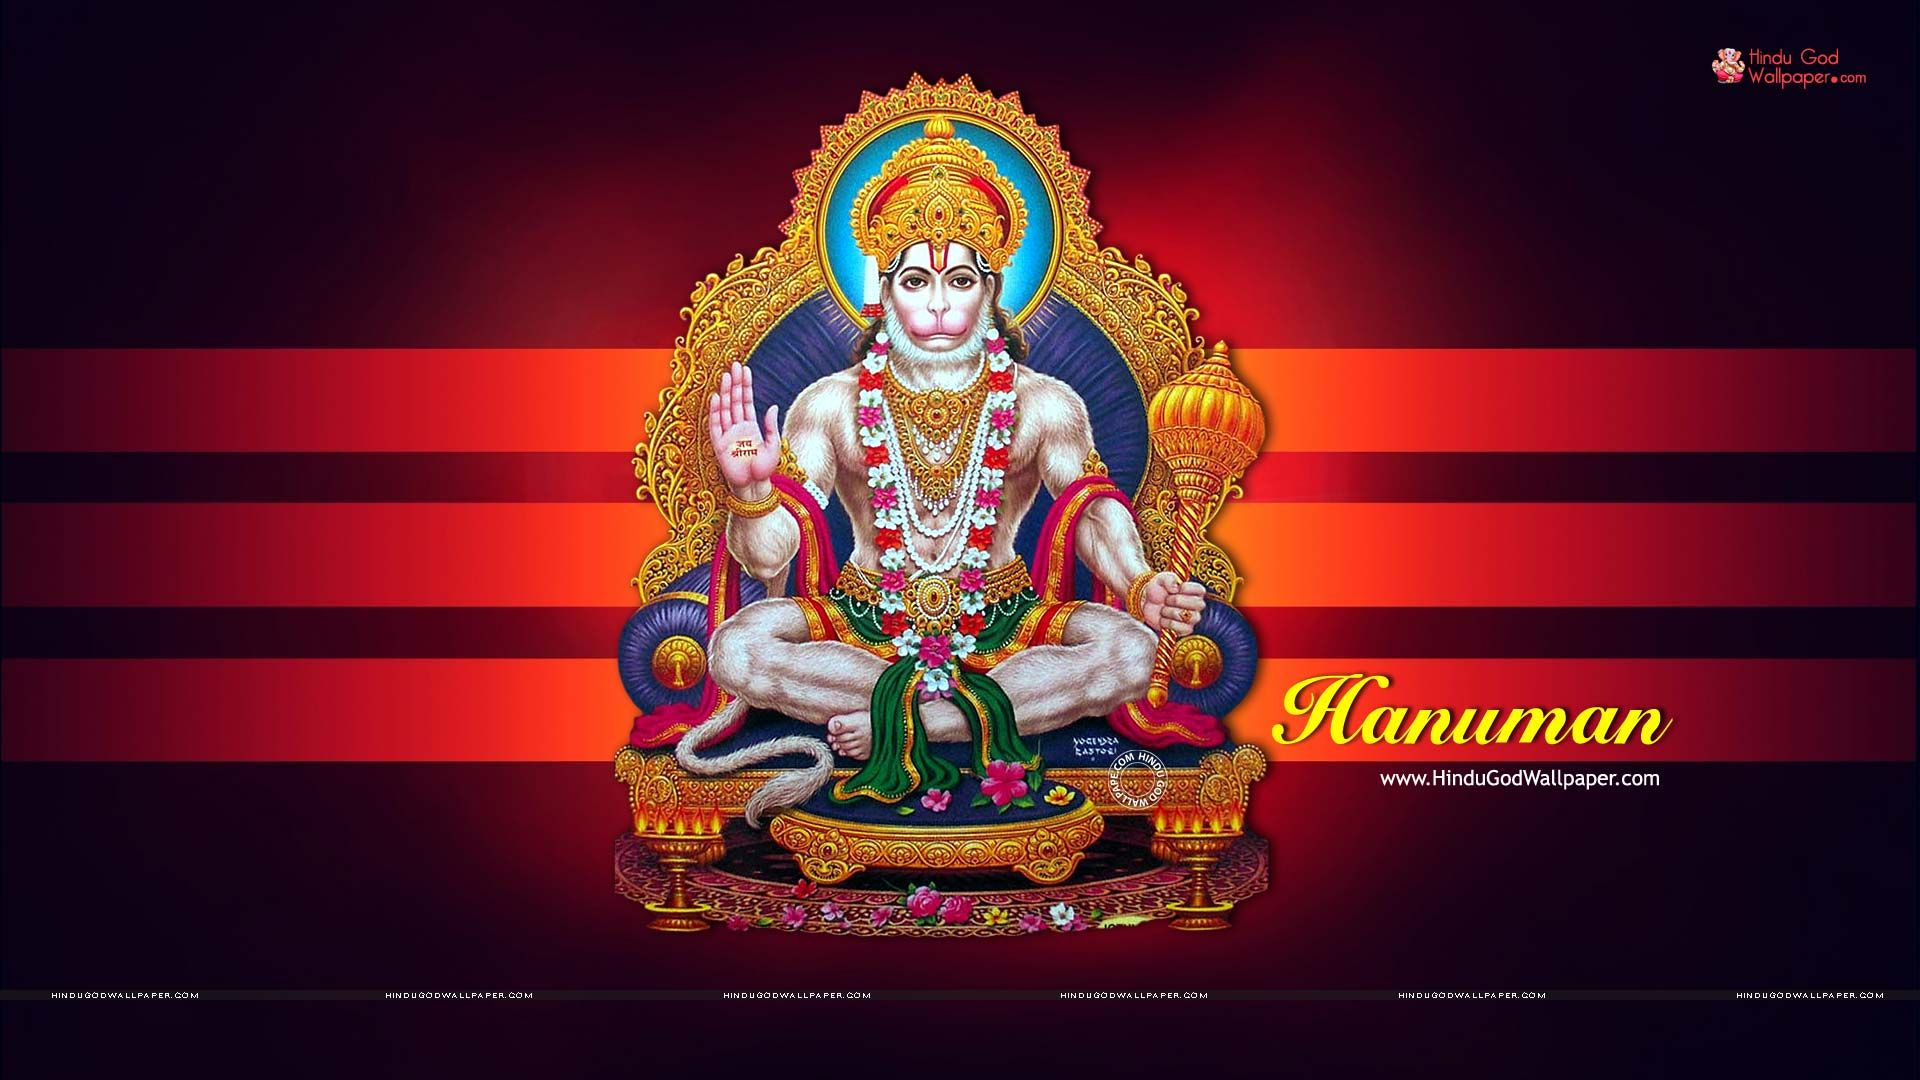 Hanuman Hd Wallpaper Full Size Hanuman Hd Wallpaper Hanuman Images Lord Hanuman Wallpapers